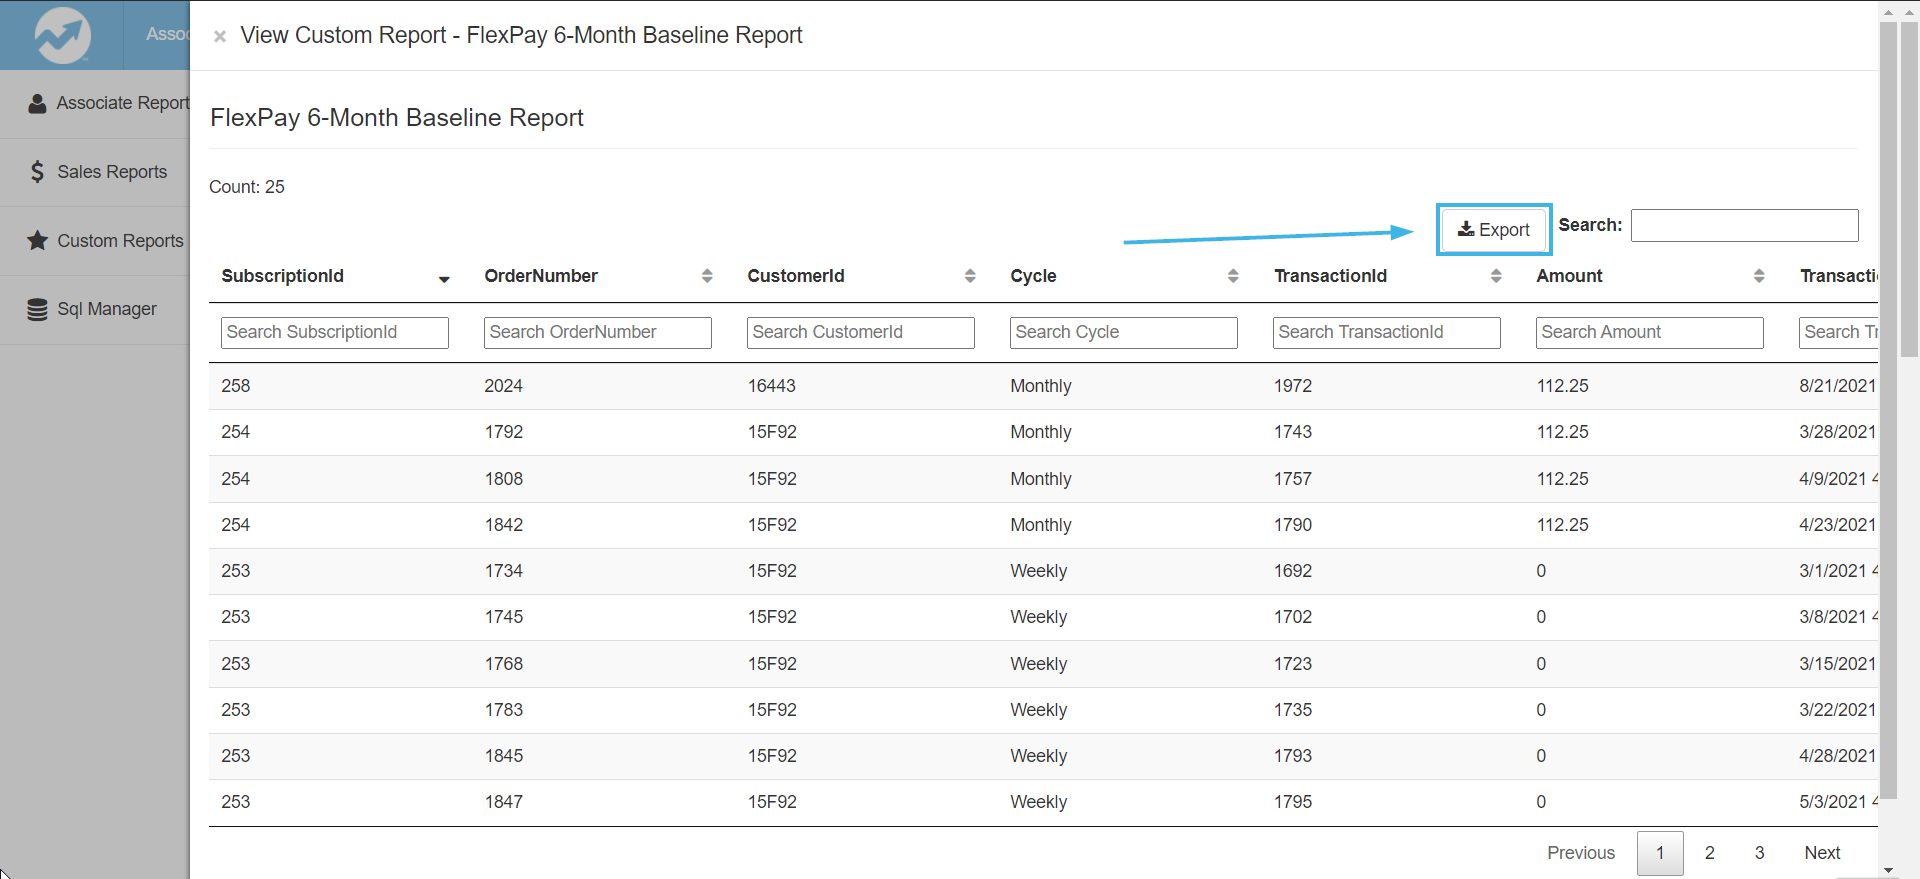 Export the report to a CSV file